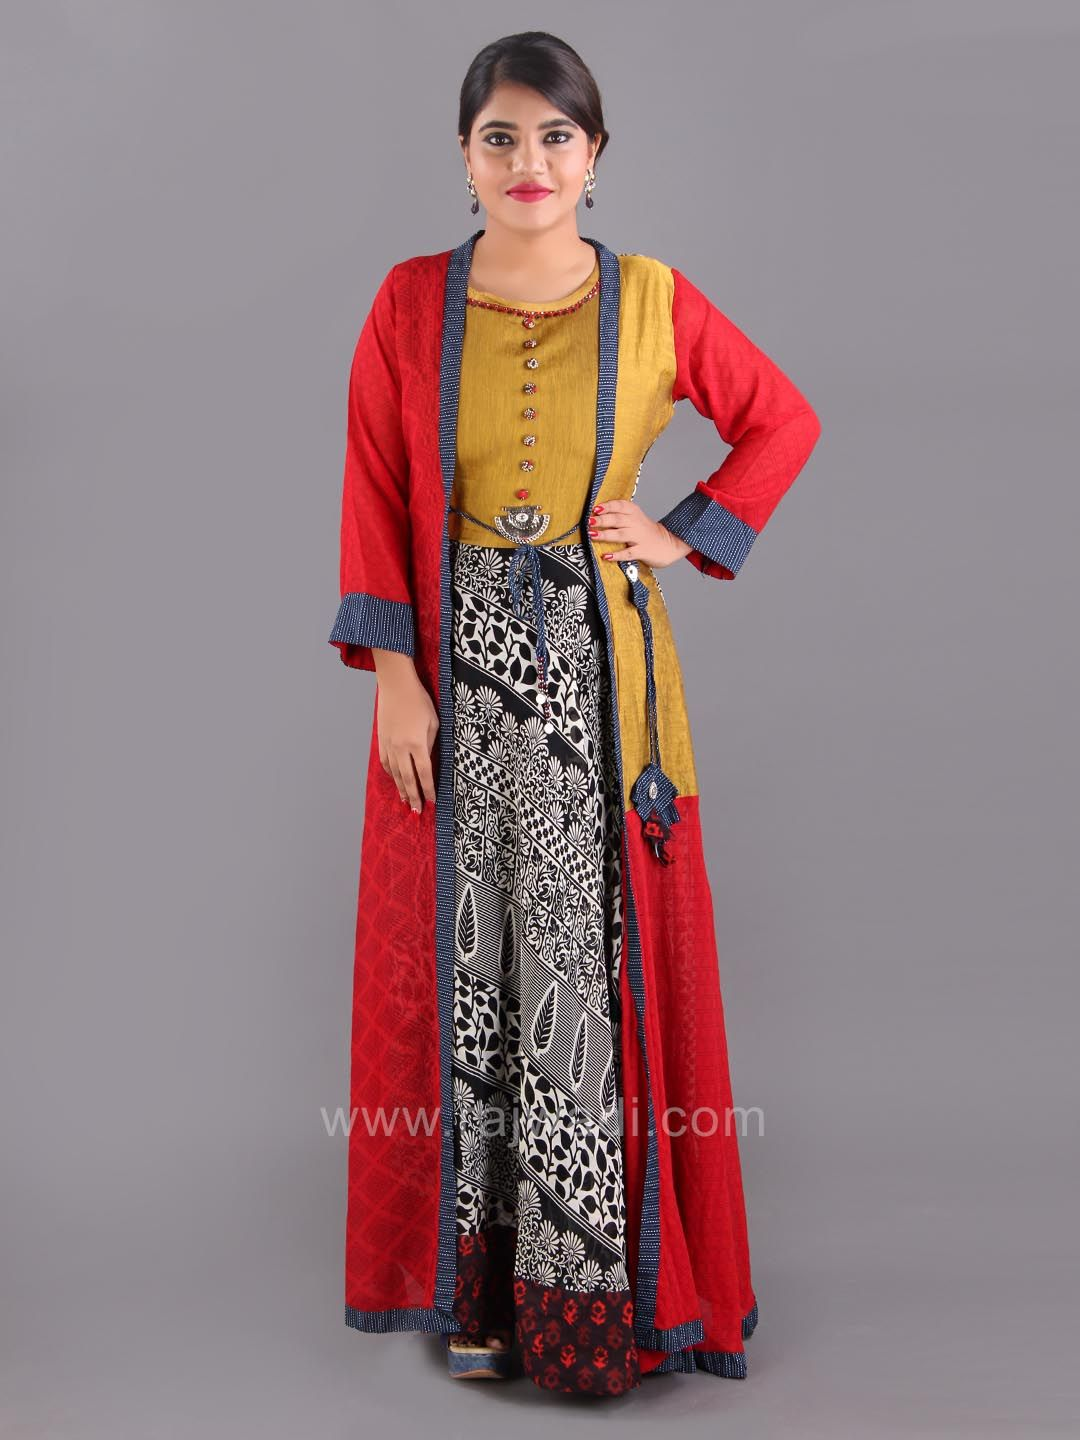 a30e1a09c5 Chiffon Silk Printed Long Kurti with Jacket Style Koti # rajwadi ...